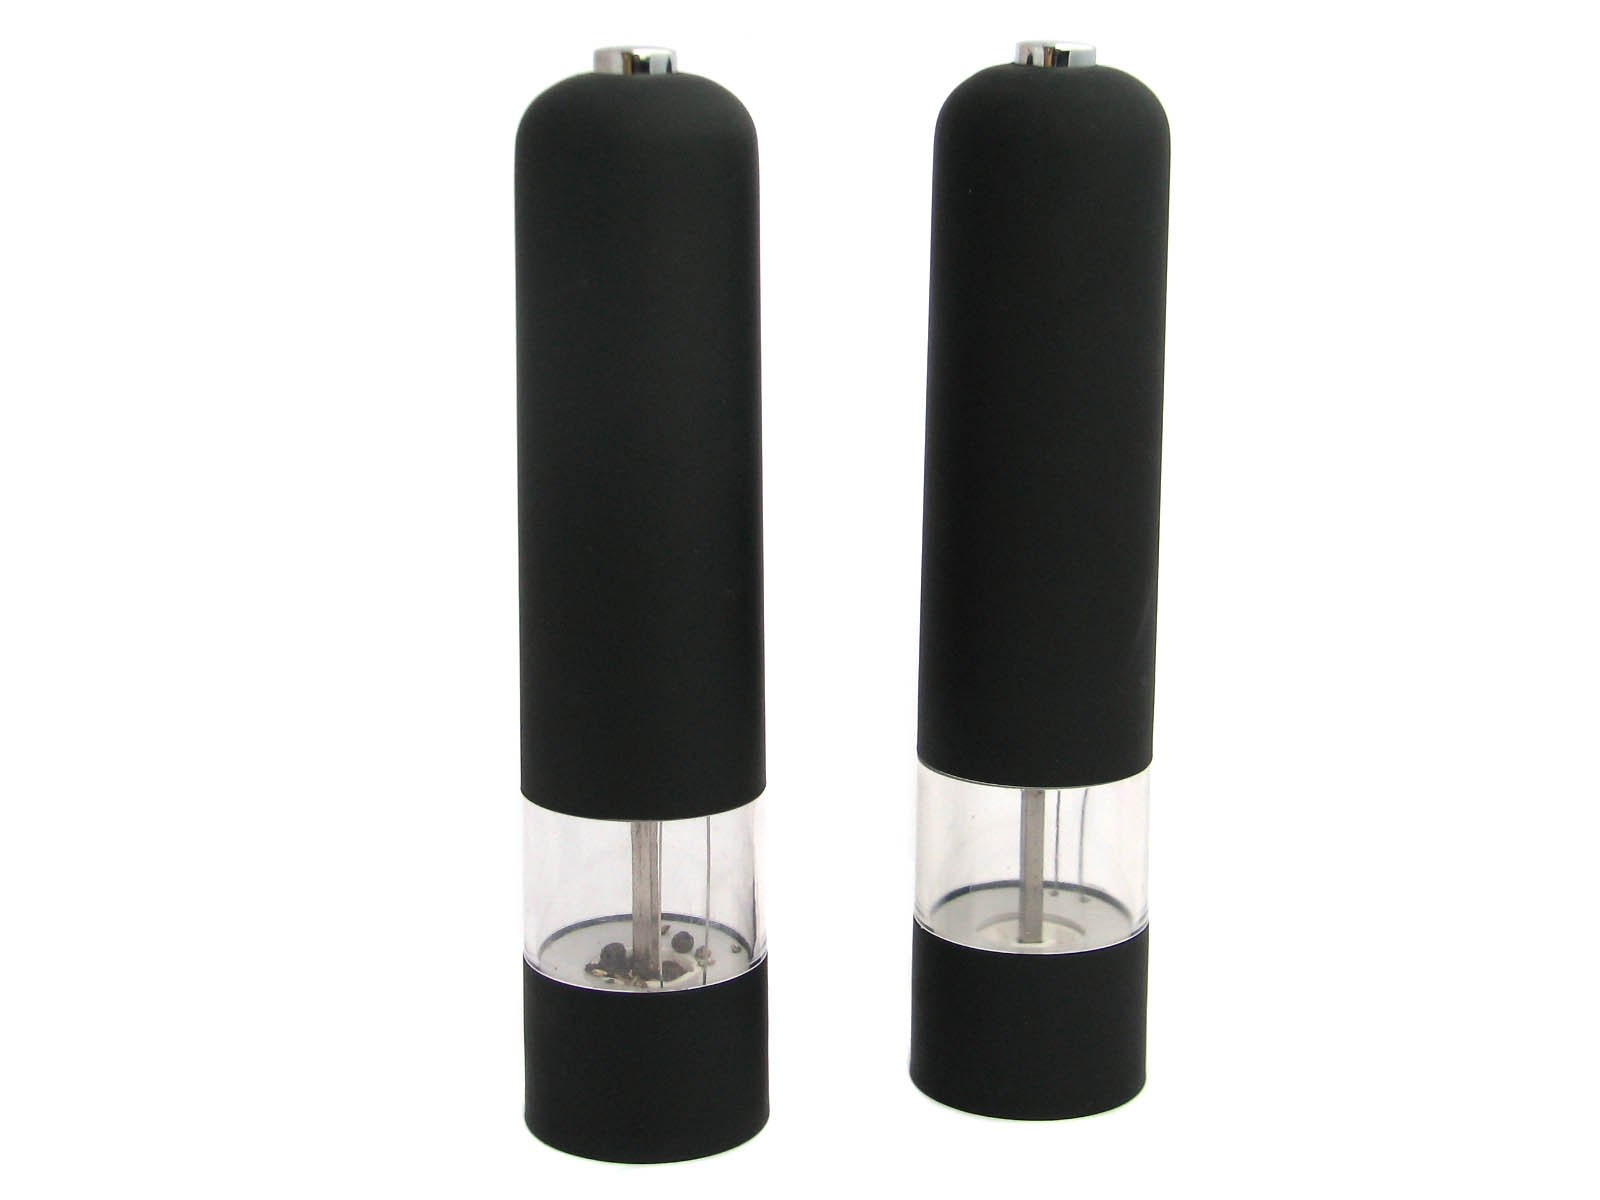 Salt and pepper mill, battery-operated - Import & manufacture for